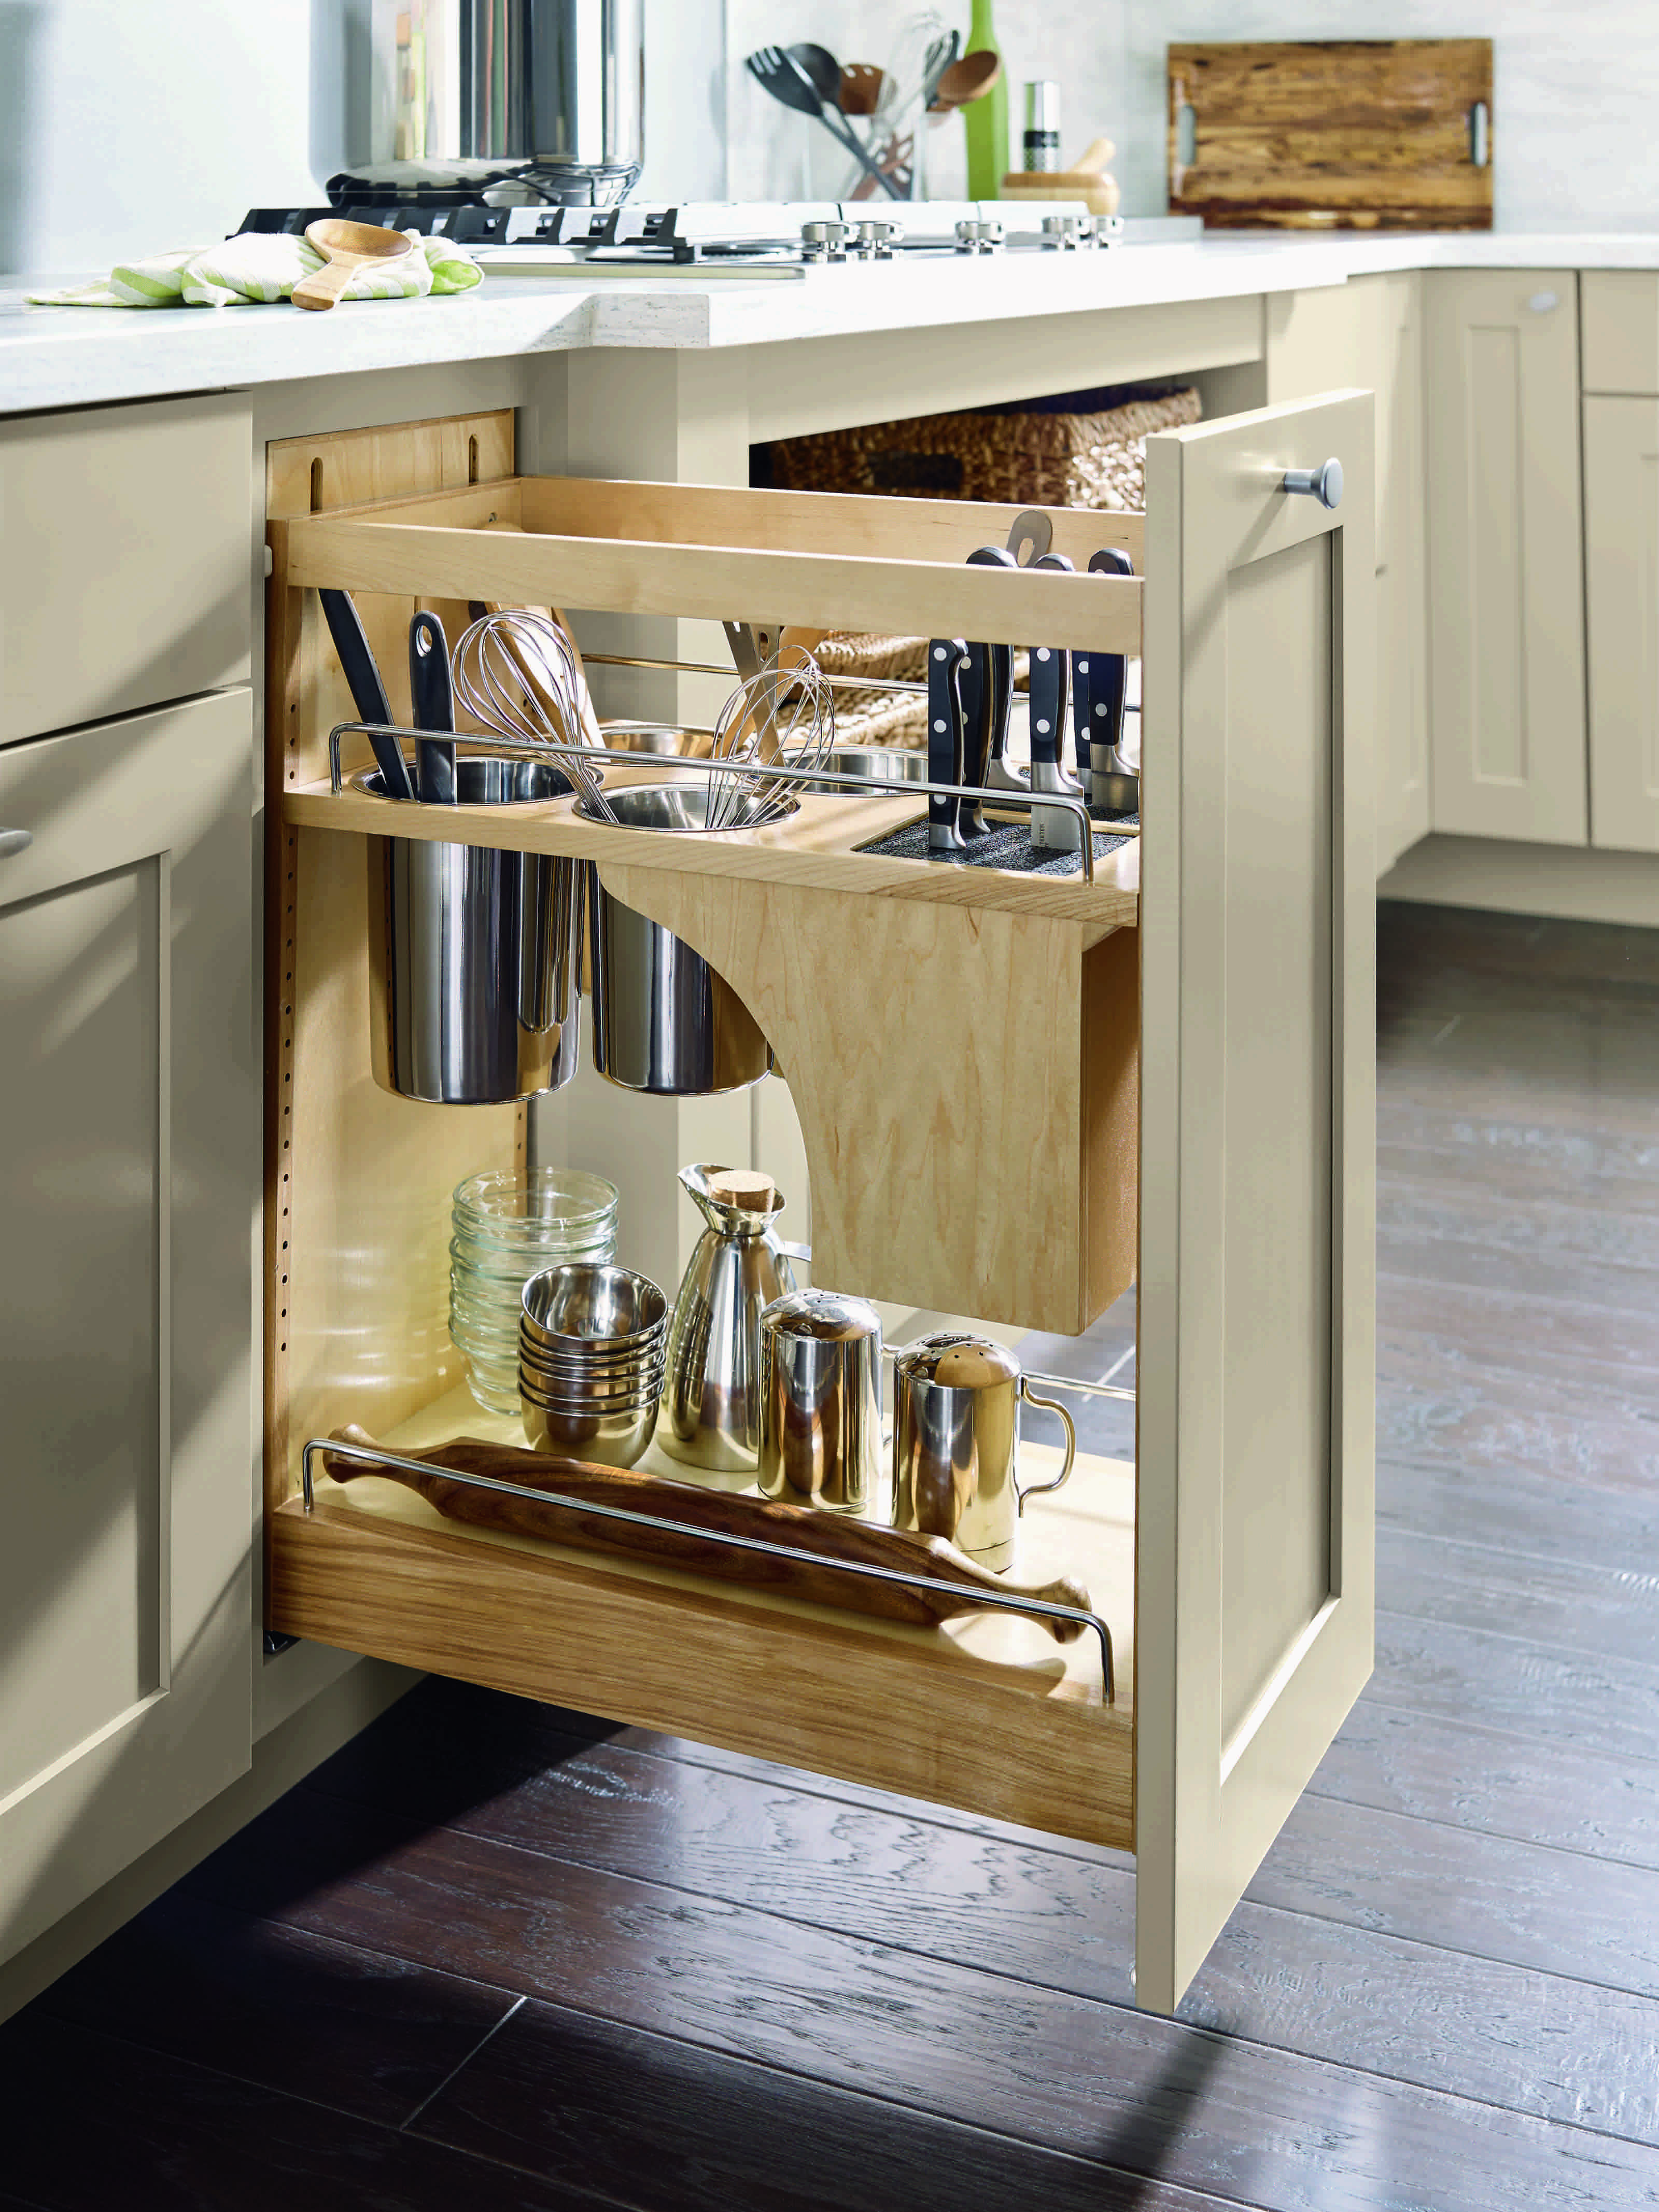 Kitchen Cabinet Layout Tools Easily Grab Knives Spatulas And Other Utensils Without